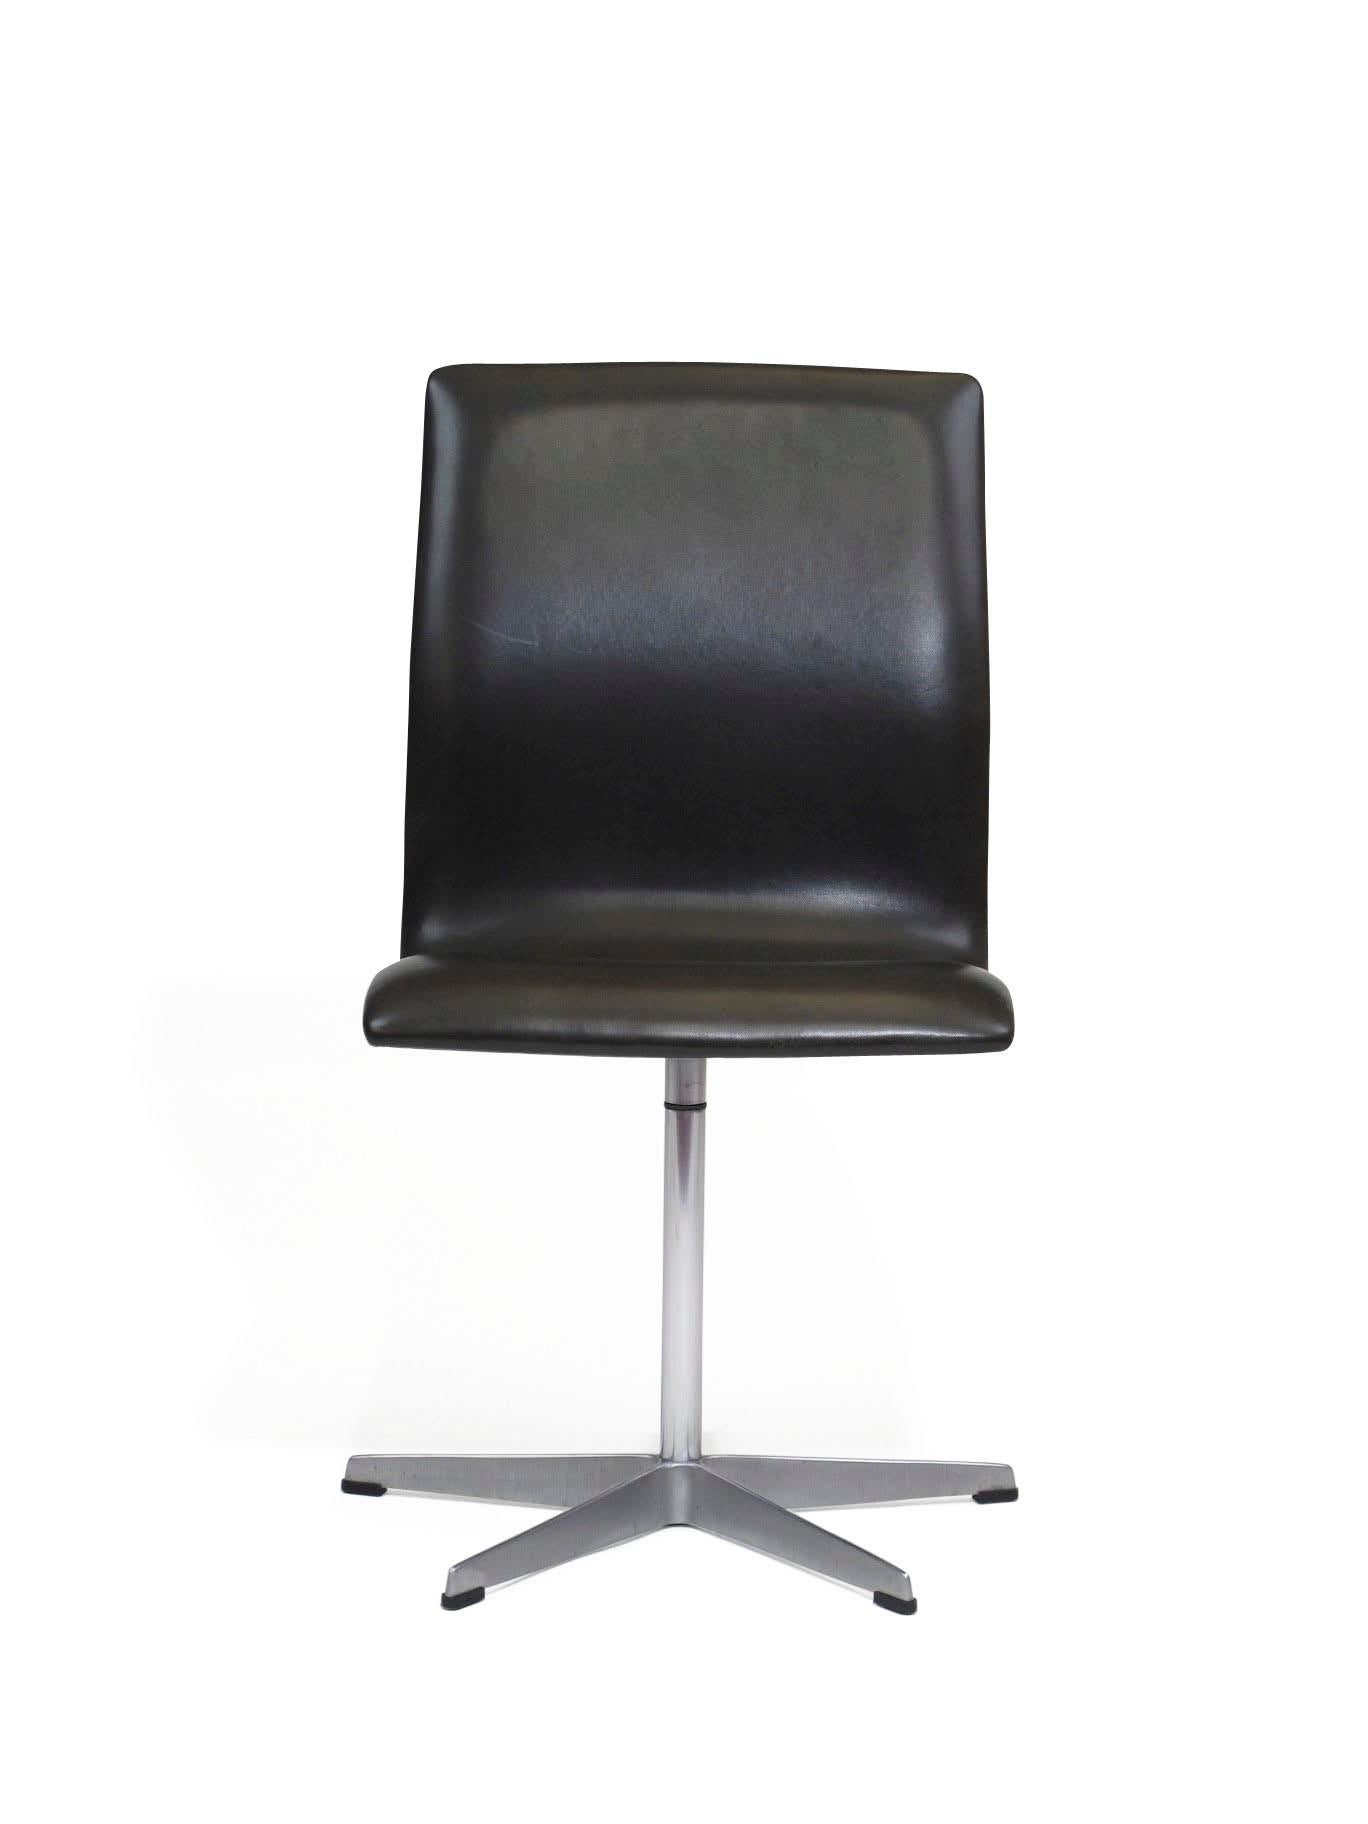 Six Arne Jacobsen For Fritz Hansen Oxford Dining Chairs In Black Leather    Image 10 Of